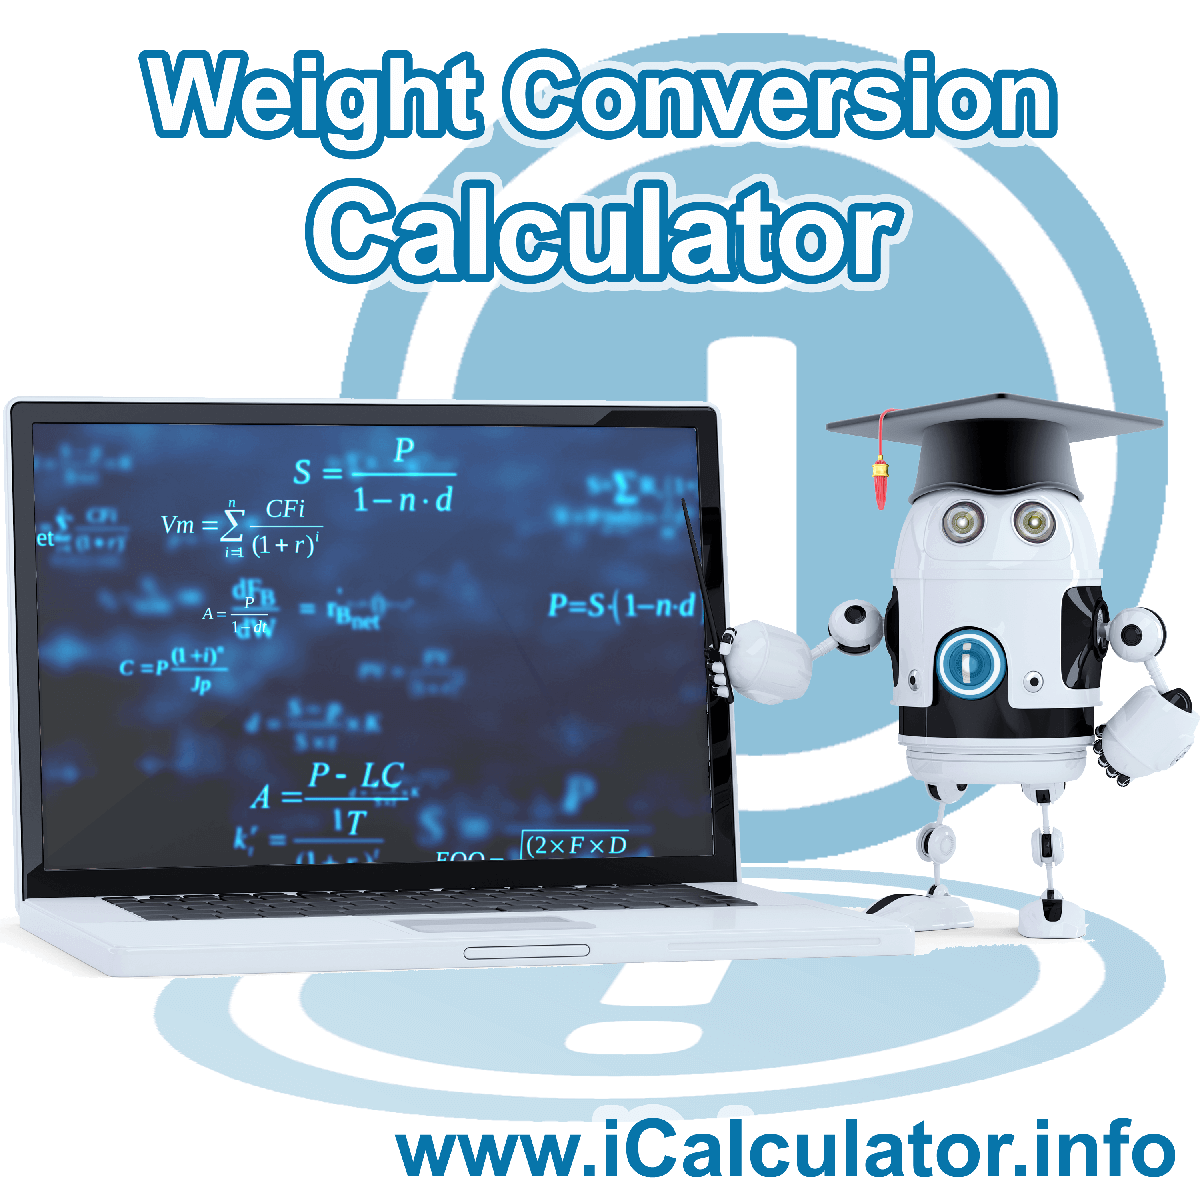 Weight Conversion Calculator: This image shows Weight Conversion formula and algorythms associated calculations used by the Weight Conversion Calculator